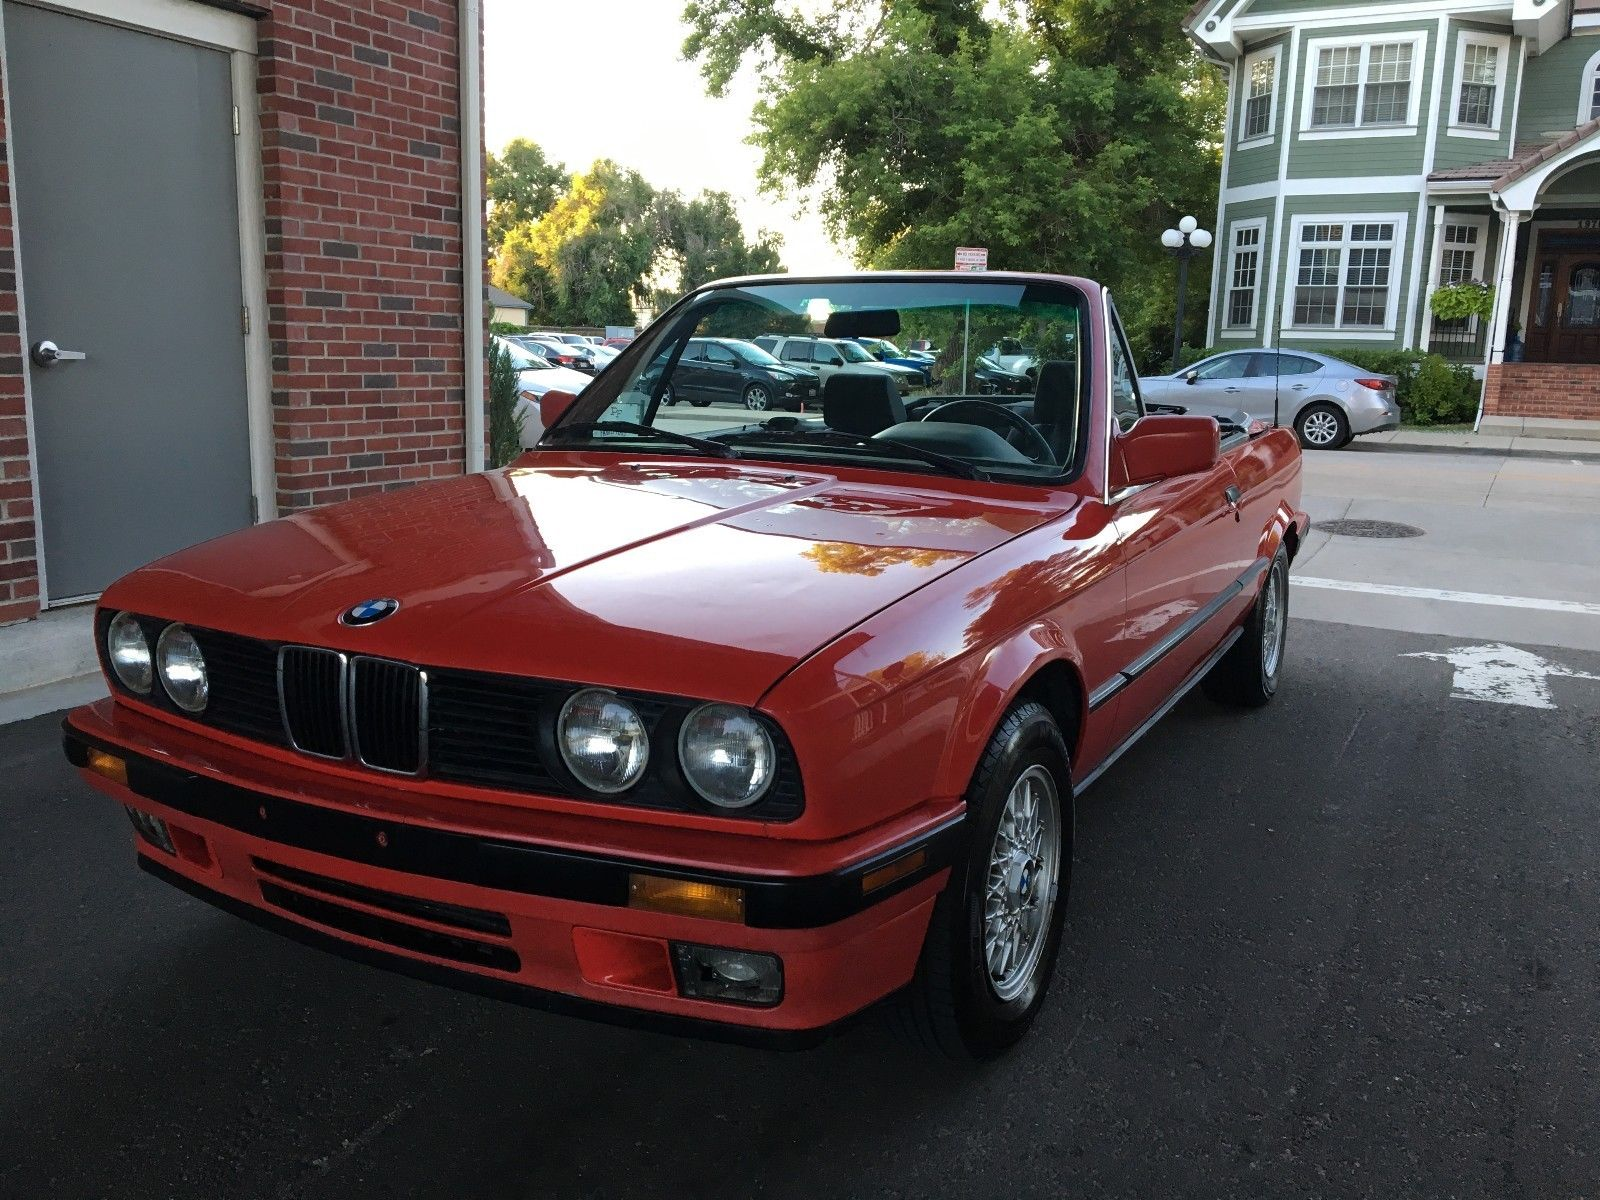 Awesome 1991 Bmw 3 Series 325i 1987 Bmw 325is 5 Speed All Original Heated Sport Seats A C Free Shipping E30 2018 2019